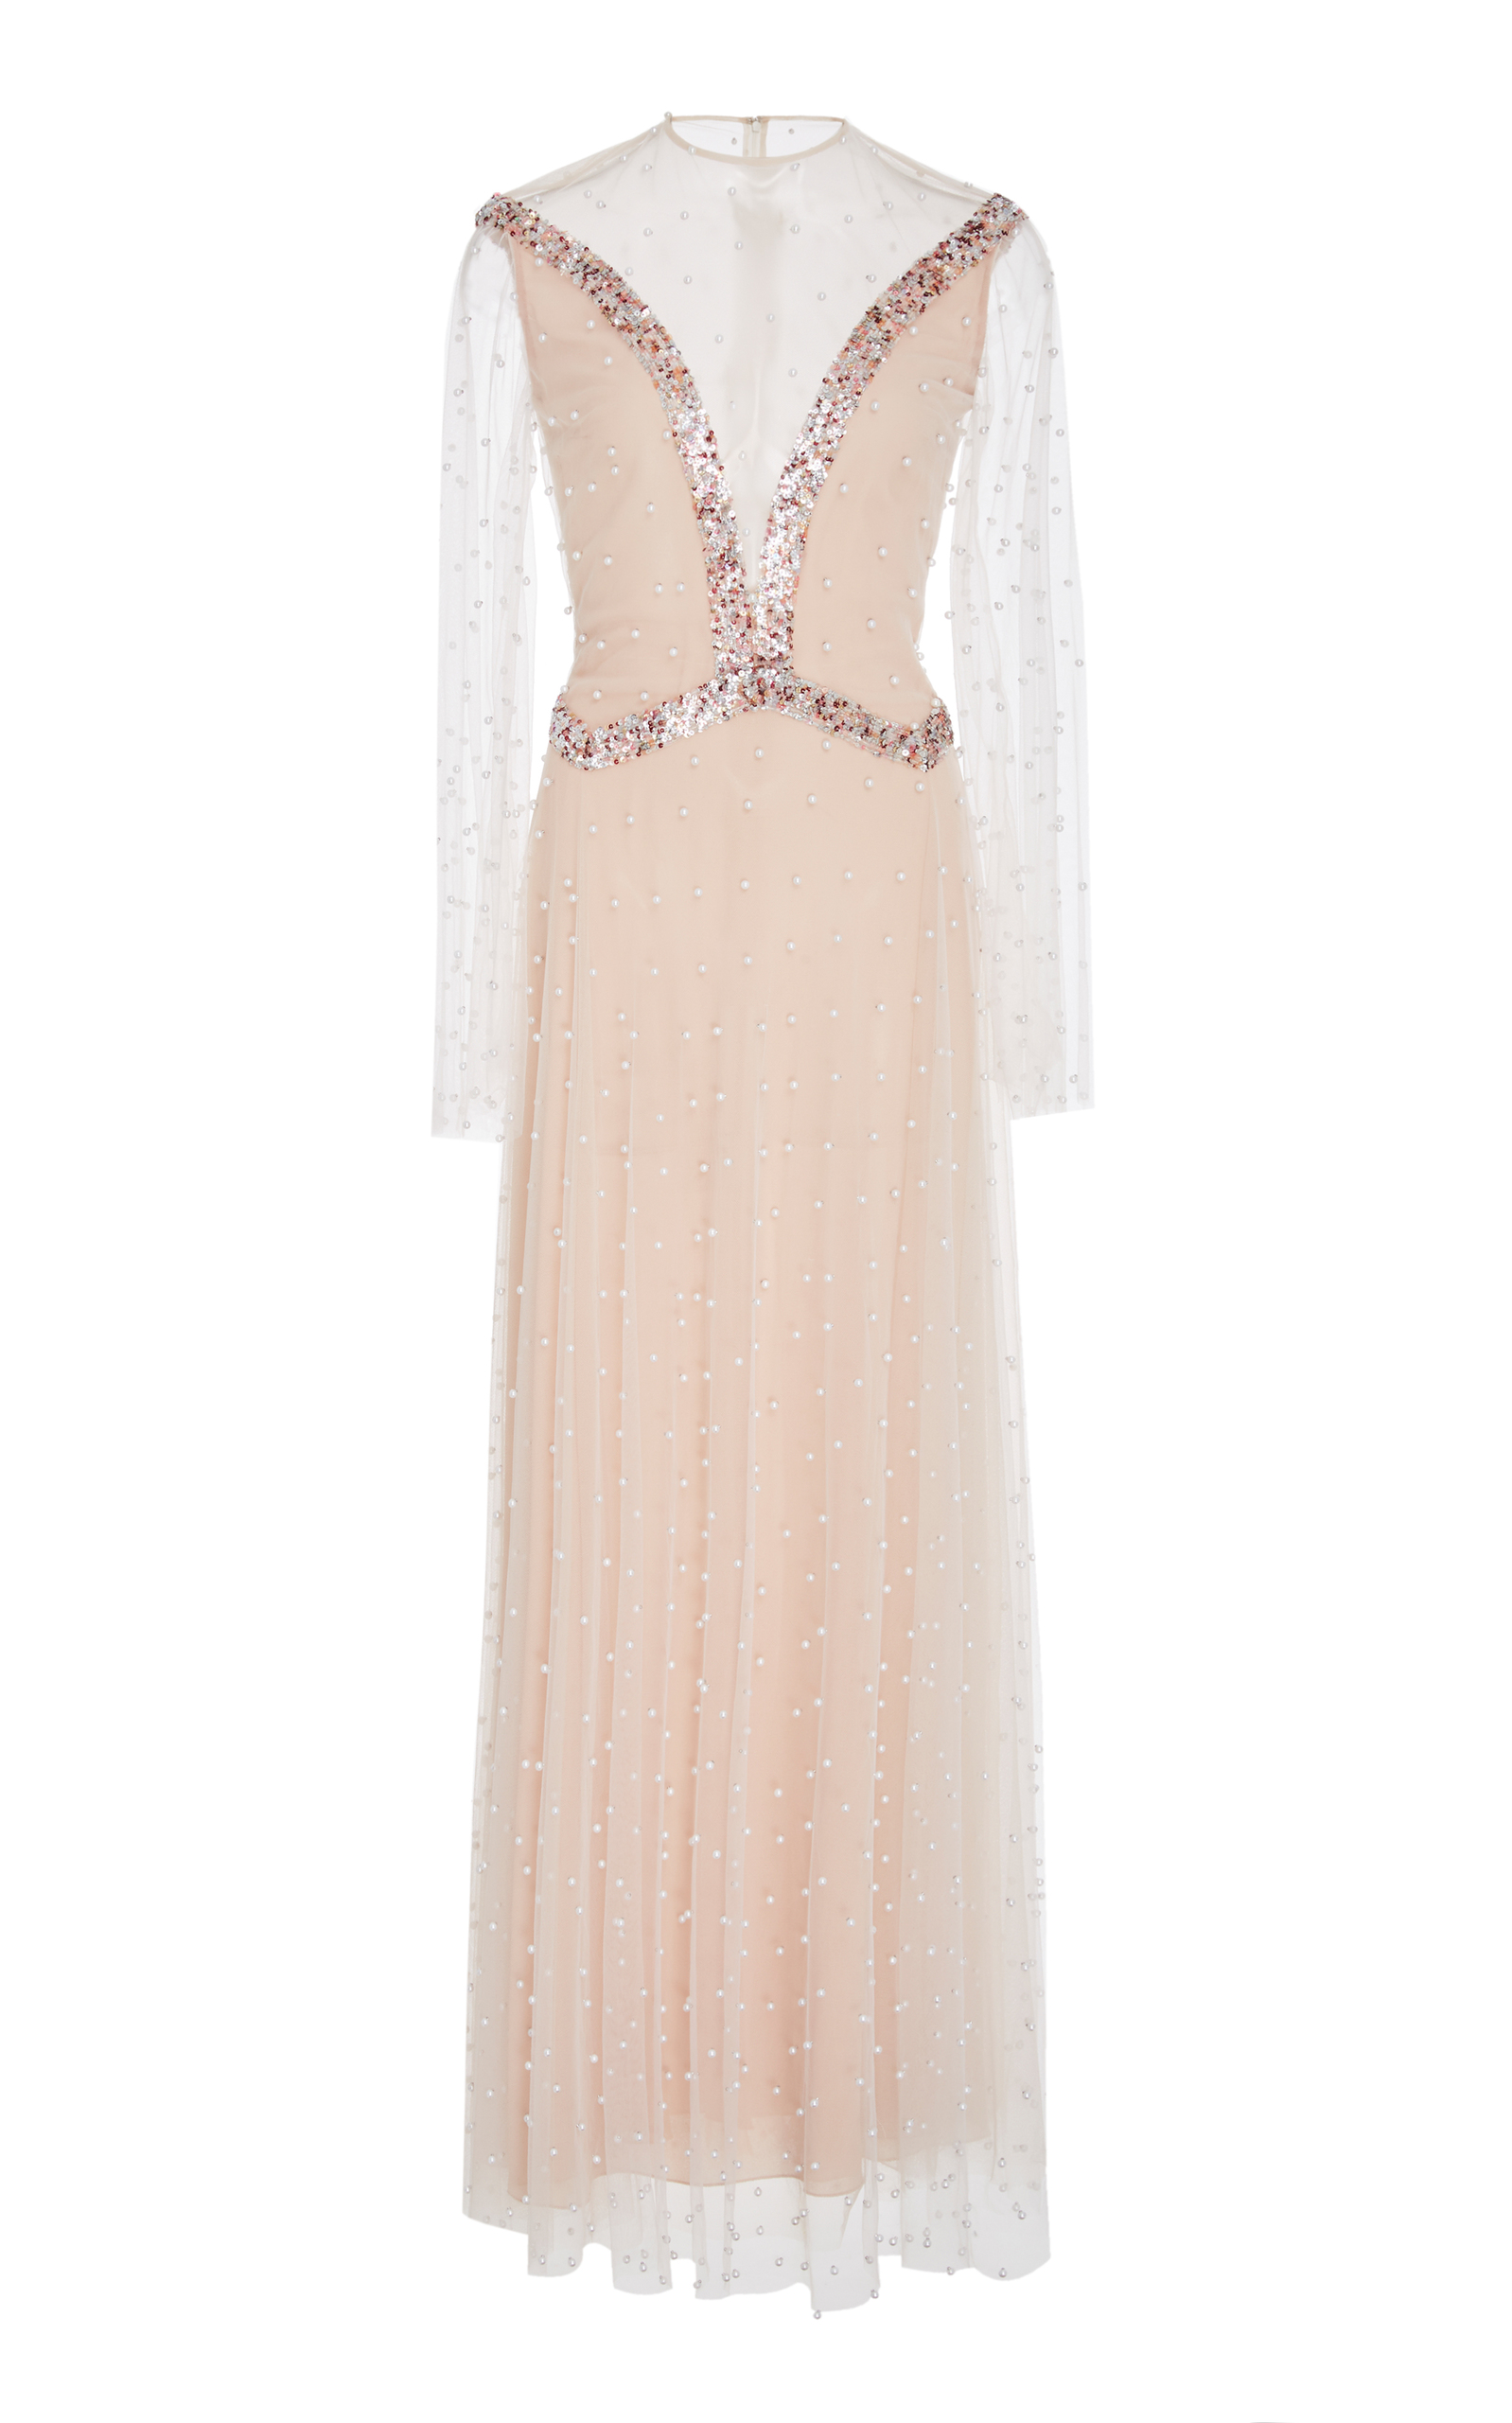 SANDRA MANSOUR M'O Exclusive Embellished Tulle Dress in Pink